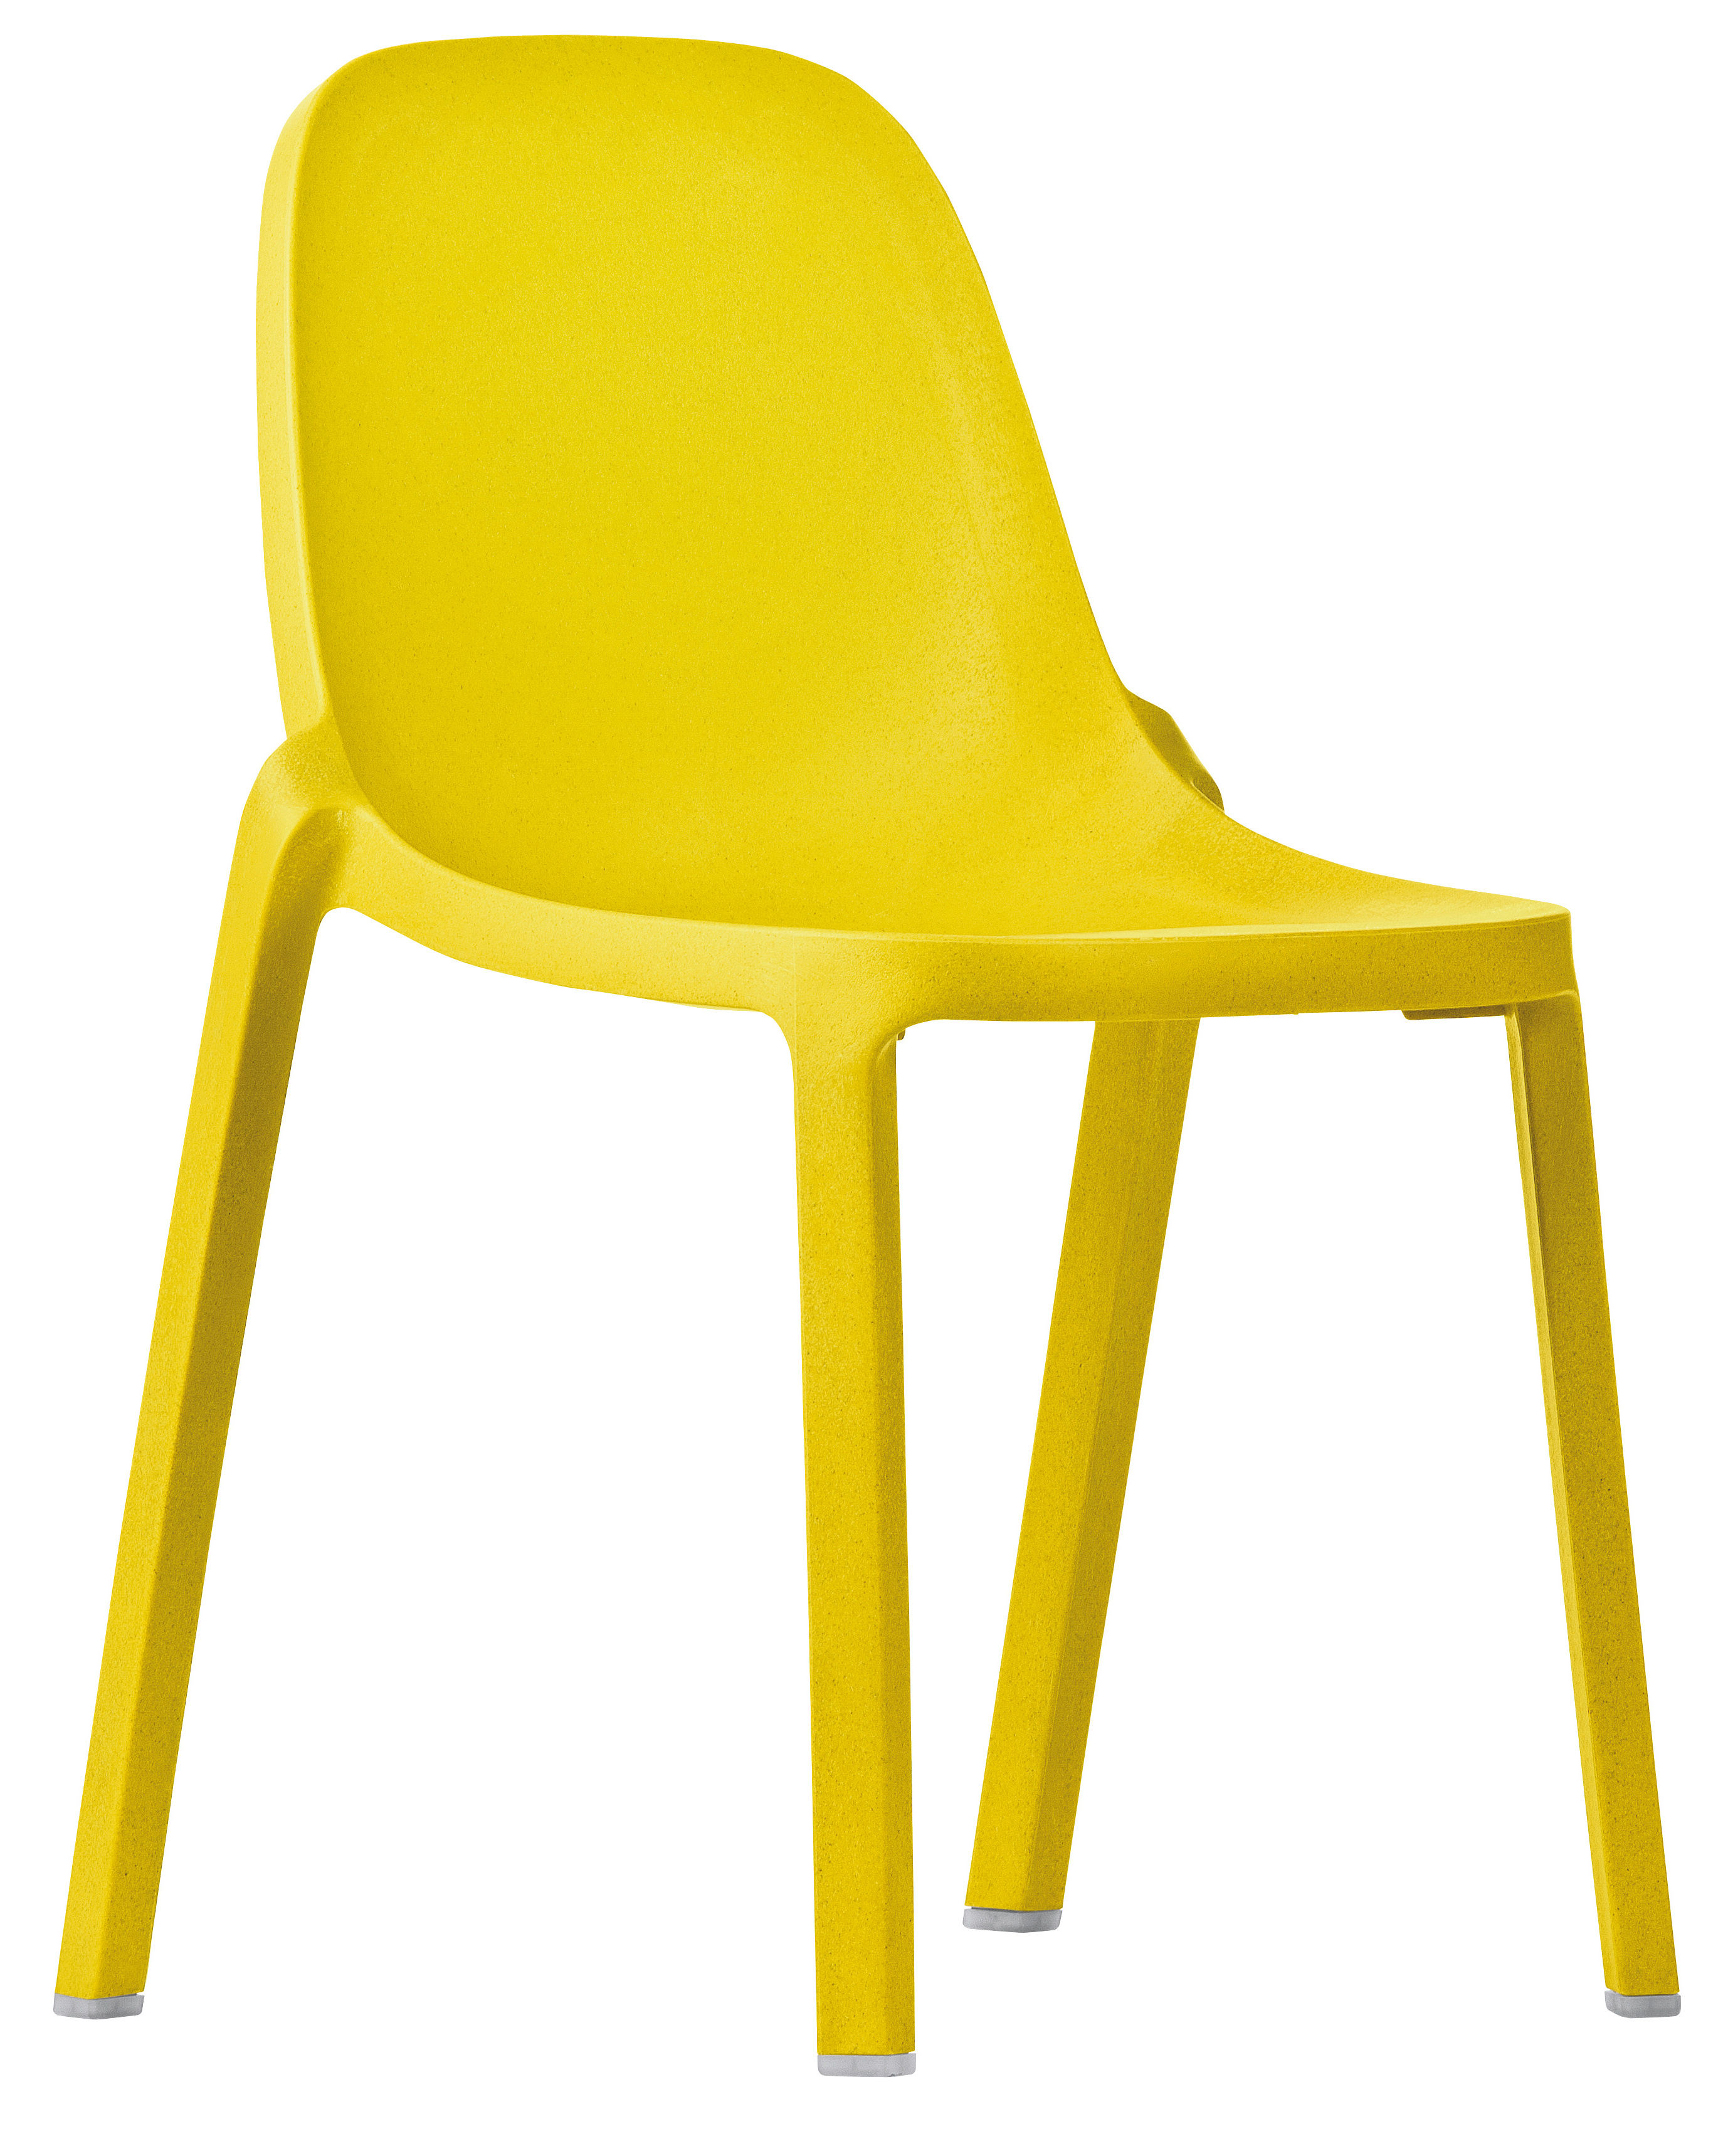 chaise empilable broom plastique recycl jaune emeco. Black Bedroom Furniture Sets. Home Design Ideas